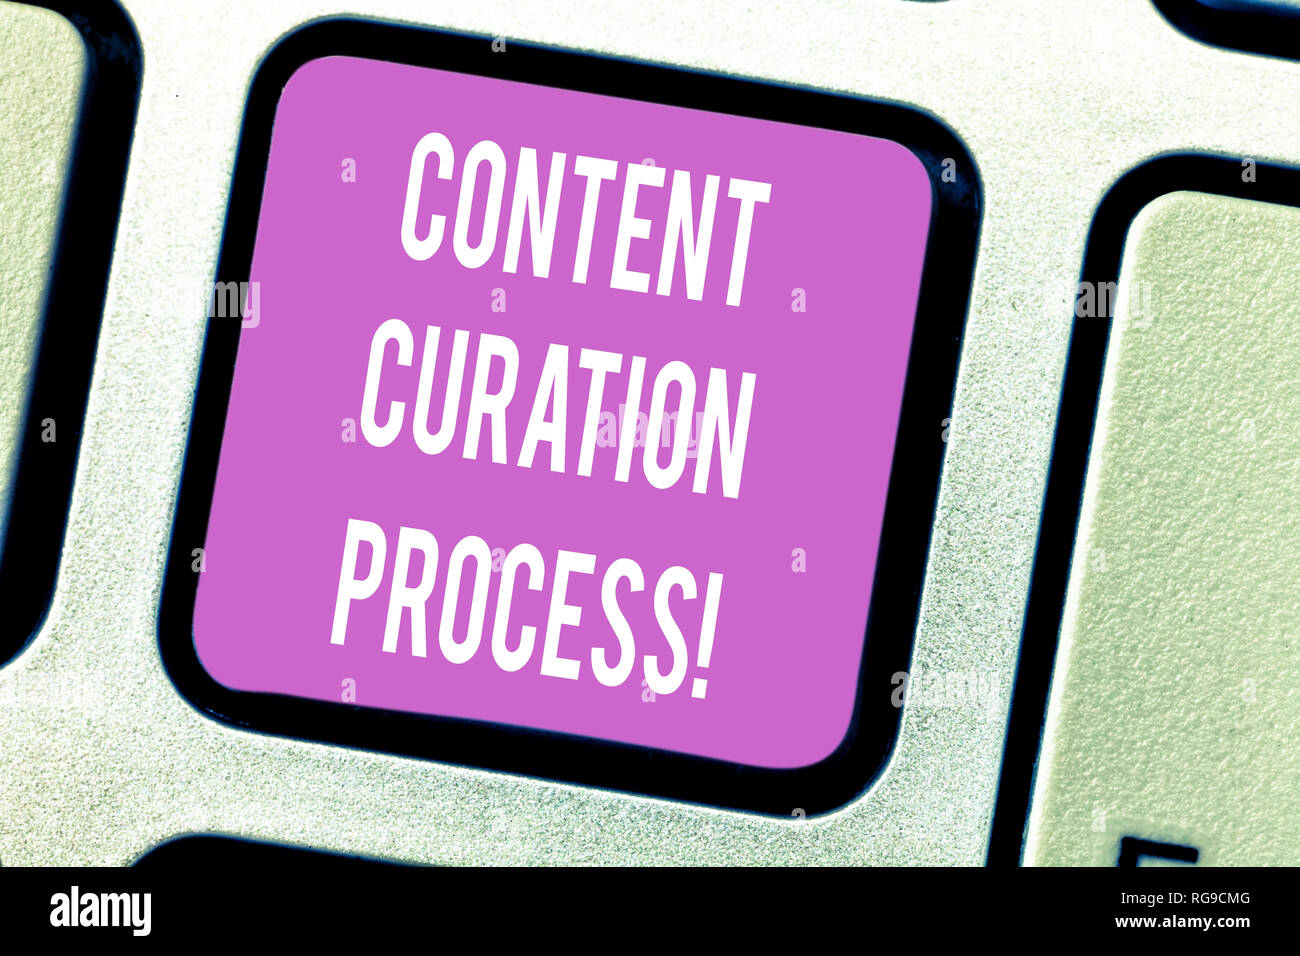 Content Curation Stock Photos & Content Curation Stock